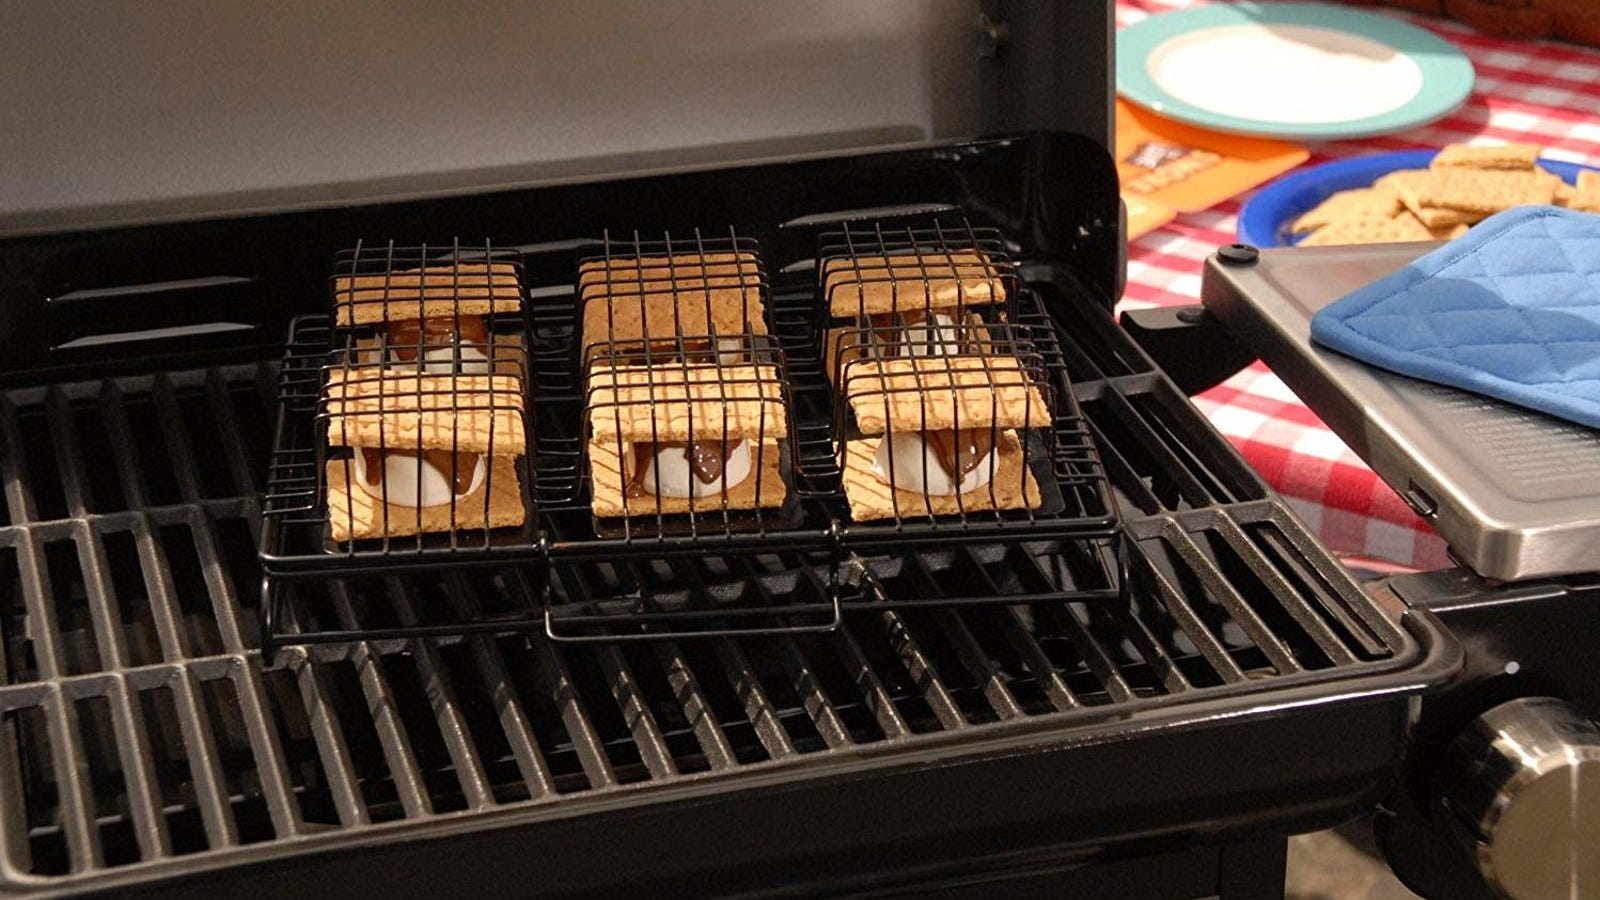 Calling All S'Mores Addicts, You Can Make 6 S'Mores at Once With This Nifty Tool